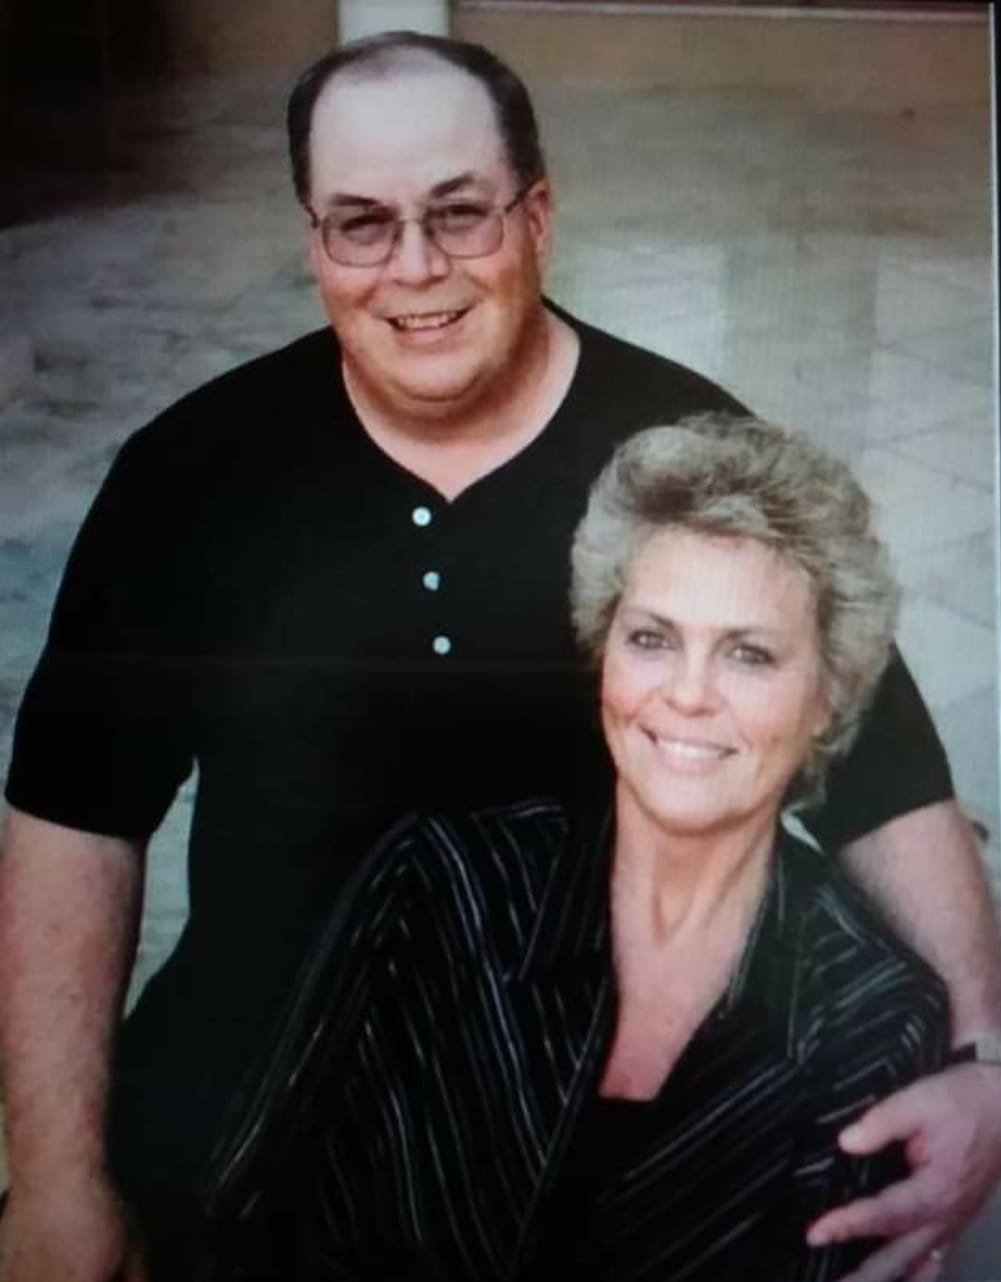 LeAnn Gross met her husband at the softball fields. They have been married for 37 years.